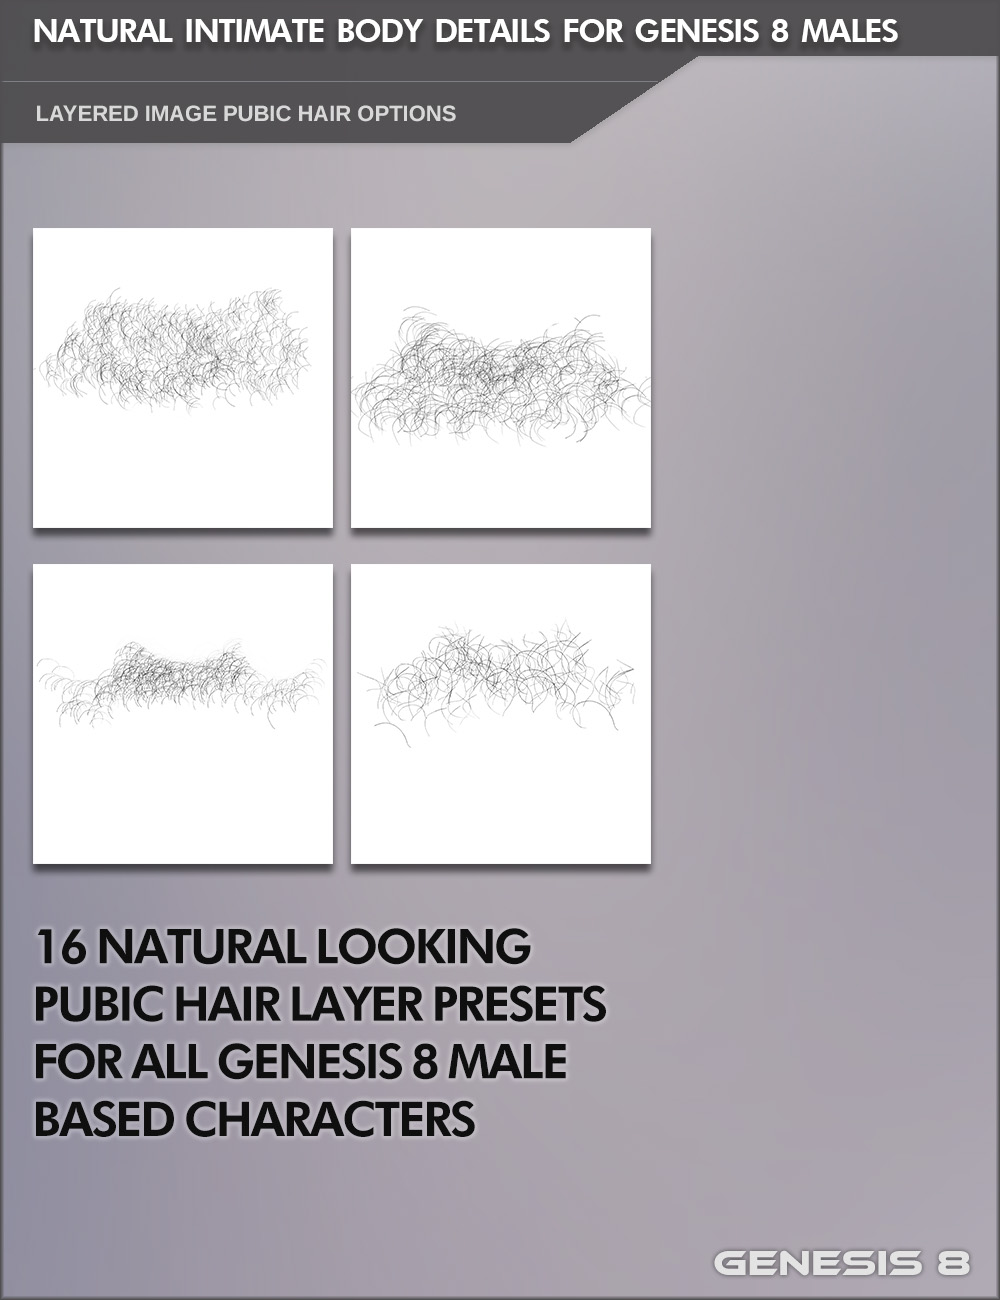 Natural Intimate Body Details for Genesis 8 Males